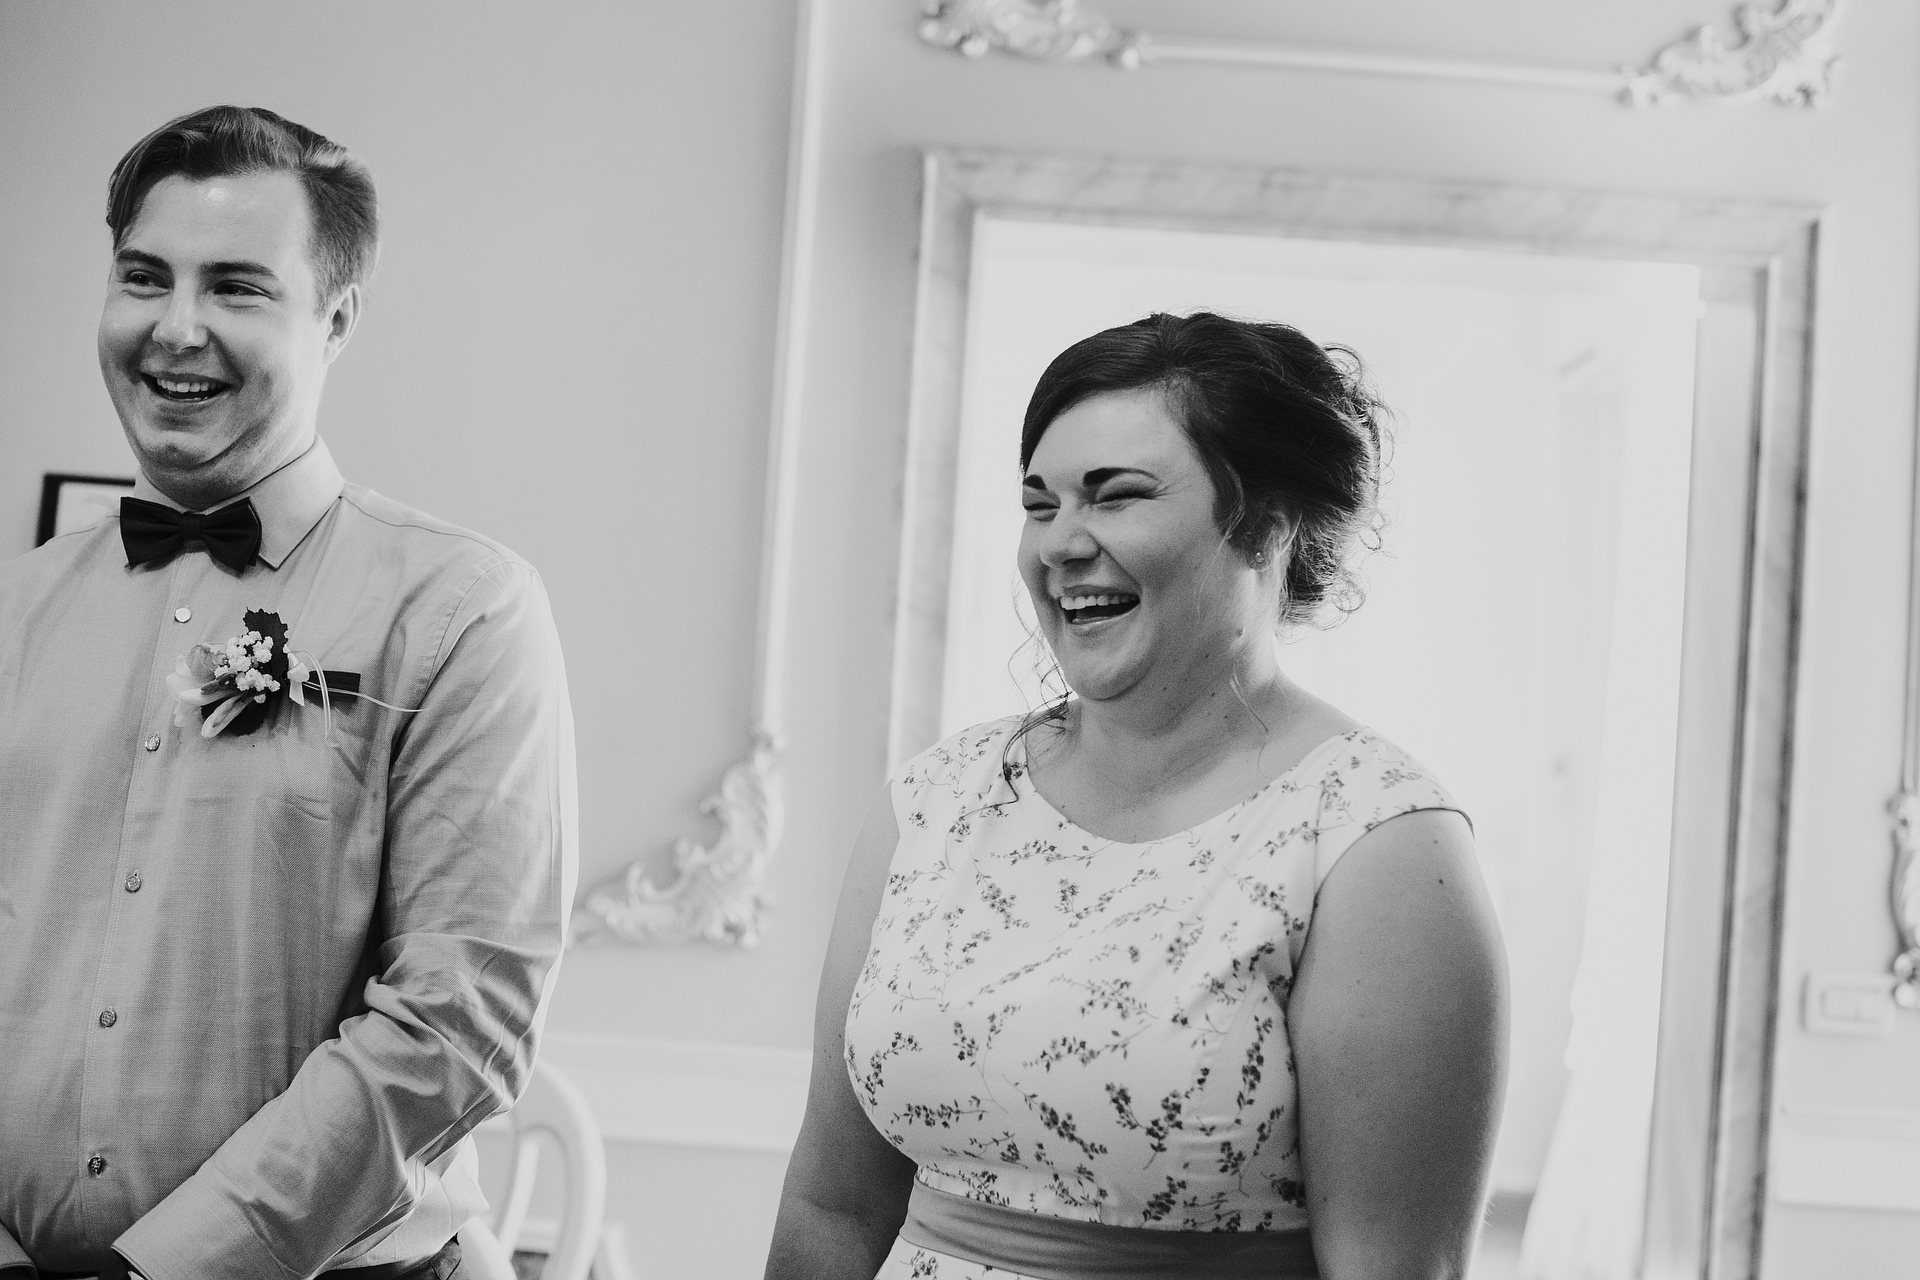 Venice Civil Ceremony Elopement Photos | Both are full of happiness after the 'yes'!